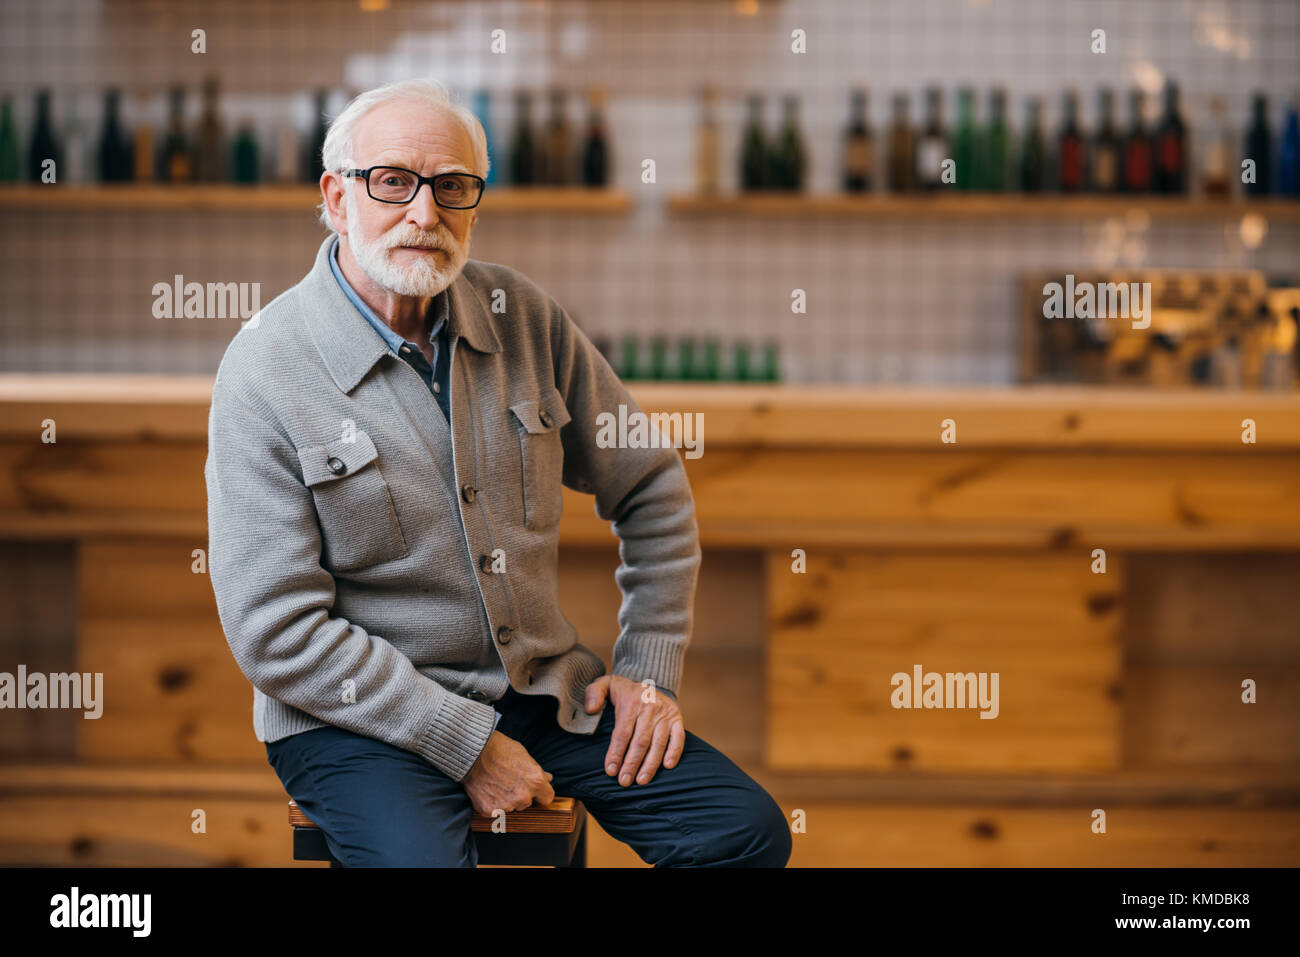 Senior man at bar Photo Stock